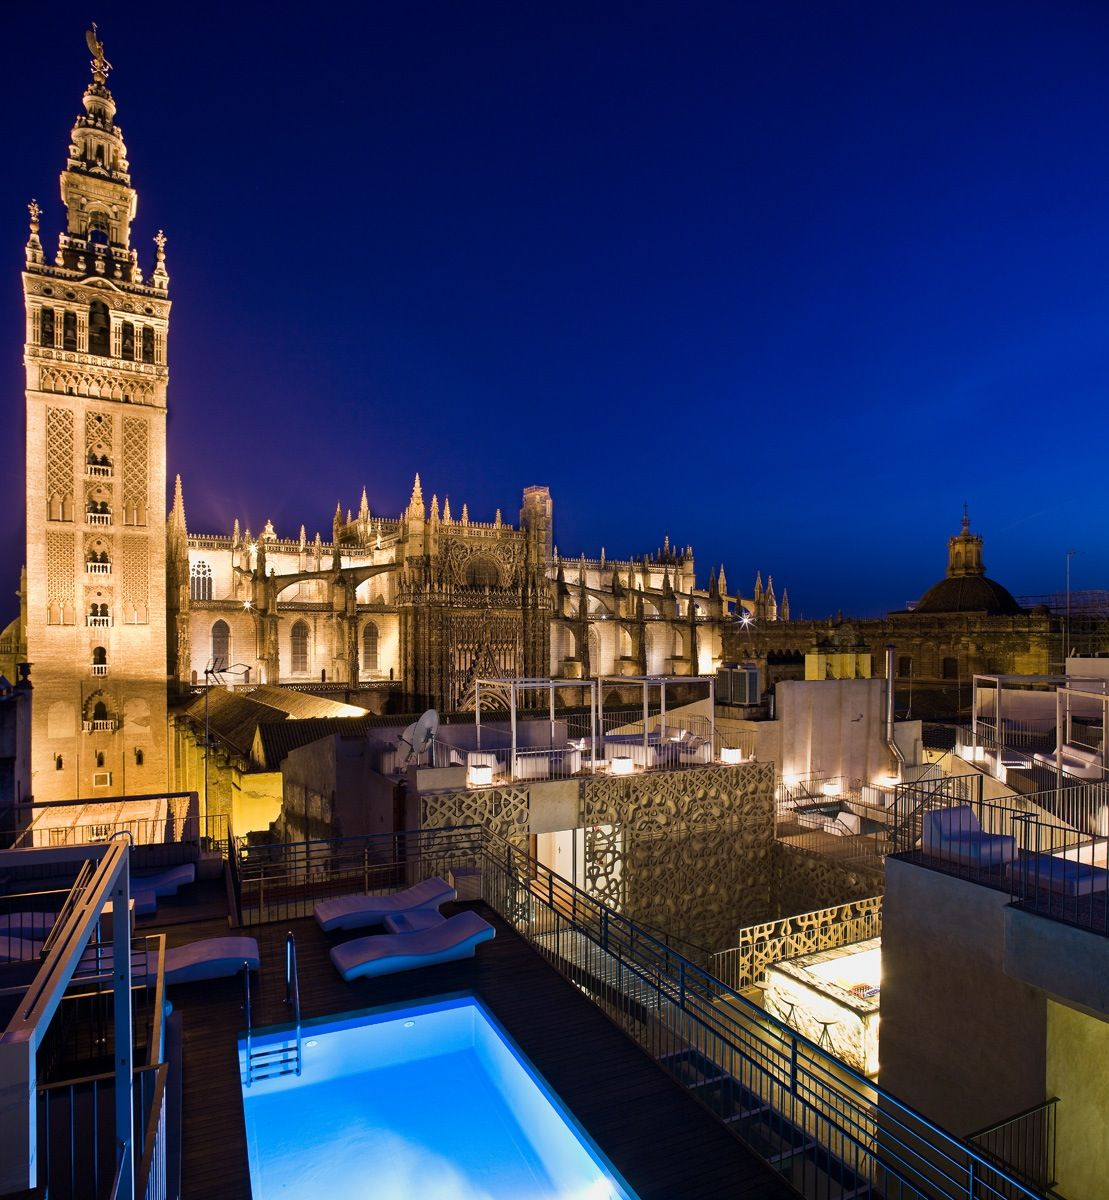 Eme Catredal Hotel Seville Spain An Exclusive And Very Particular Experience